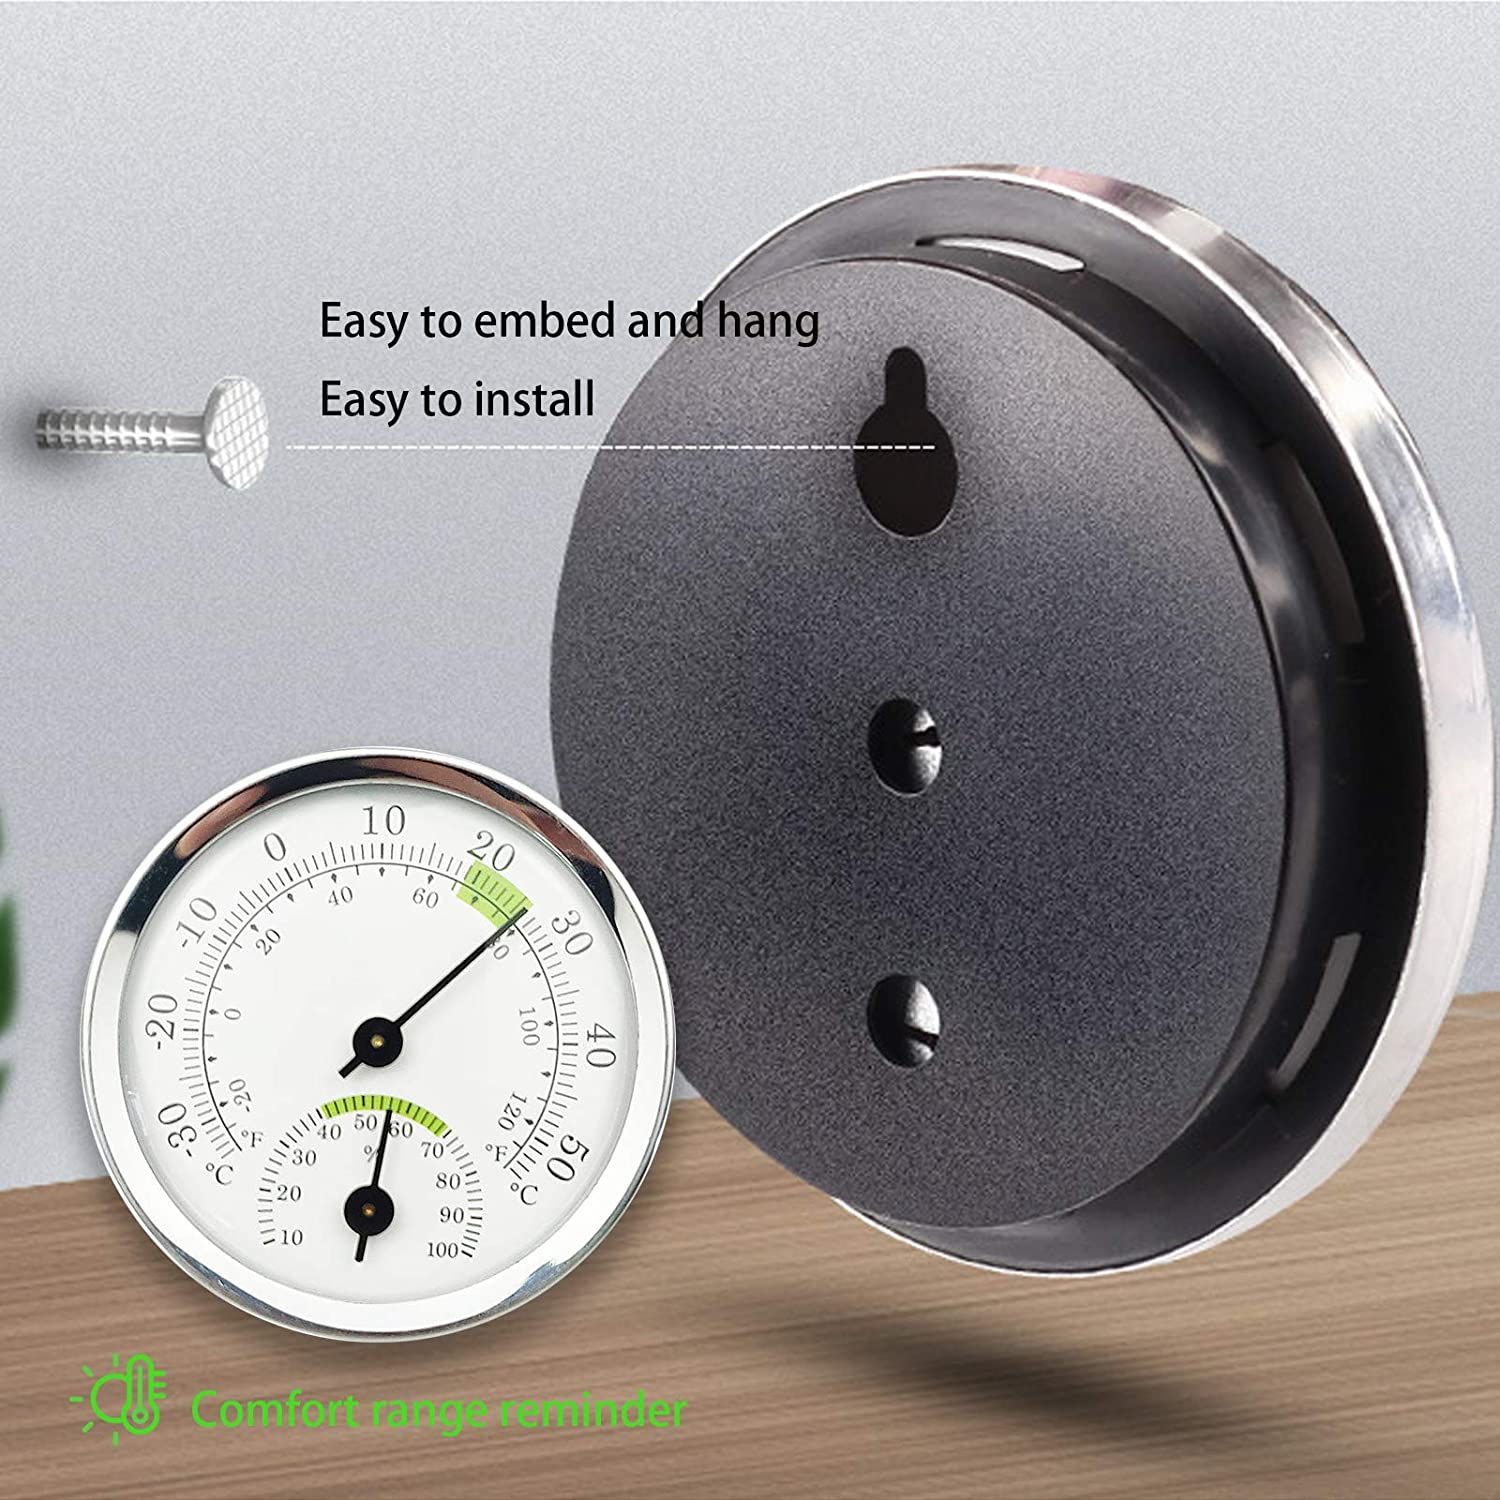 Greenhouse or Decorative Round 2.28 in Diameter No Battery Required Indoor Outdoor Thermometer Hygrometer Car Mini Wireless Thermometer for Room Kitchen